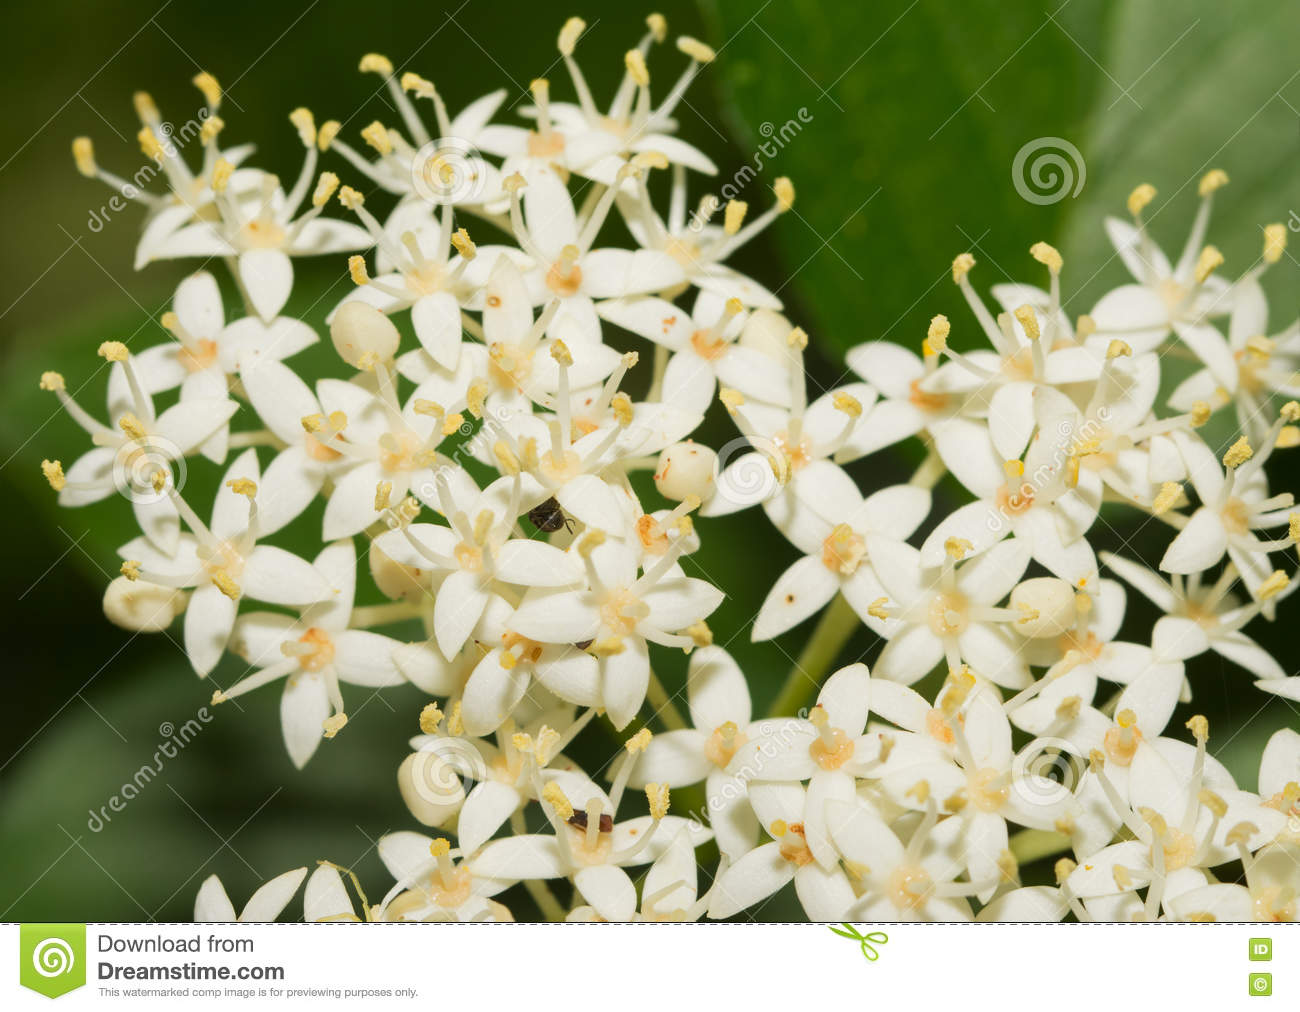 Tiny white flower clusters of roughleaf dogwood stock photo image download tiny white flower clusters of roughleaf dogwood stock photo image of flower cluster mightylinksfo